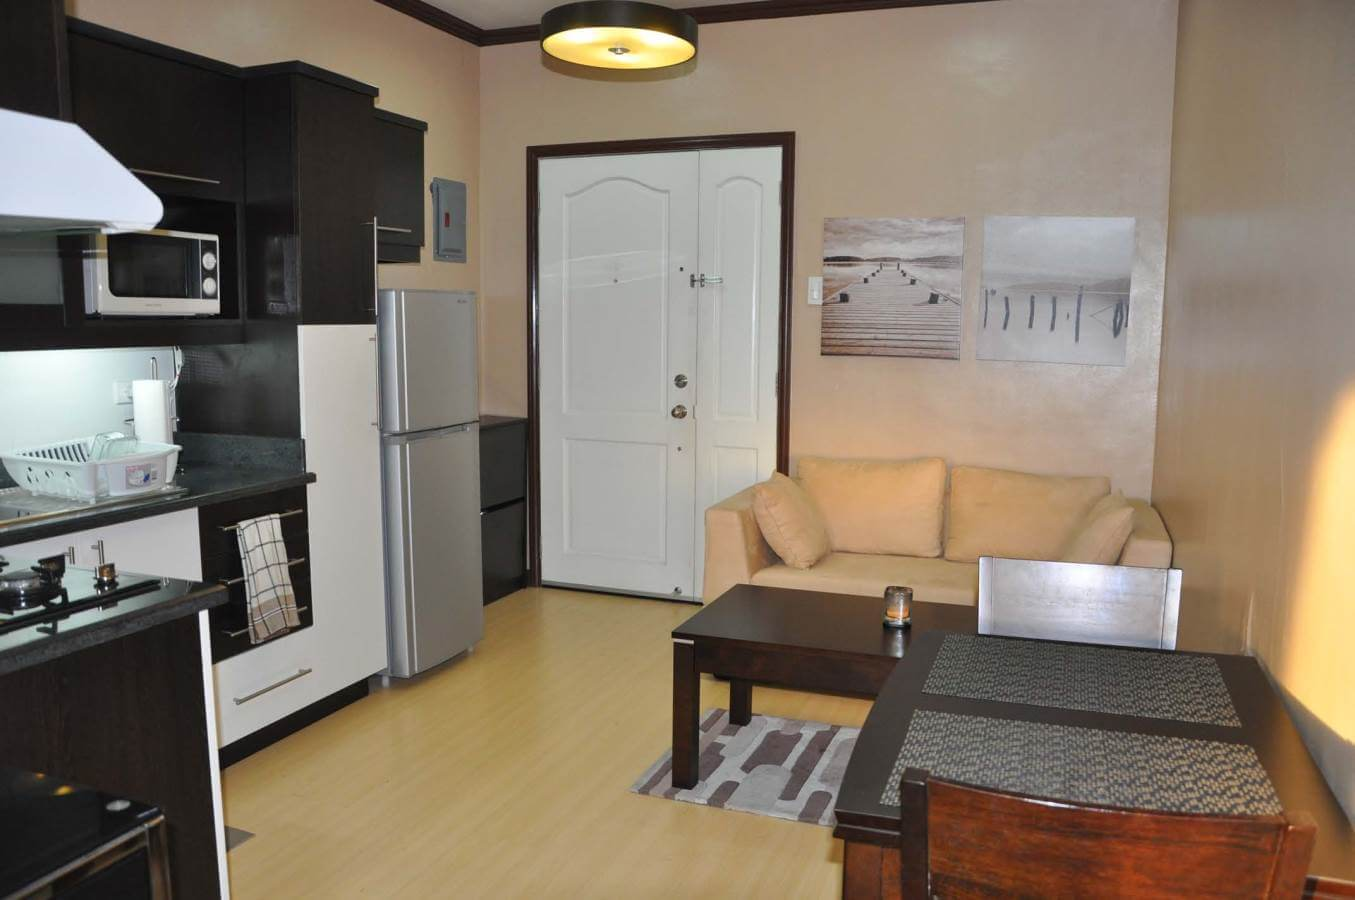 Palaciego uno fully furnished 1 bedroom condo unit for for I bedroom condo for rent